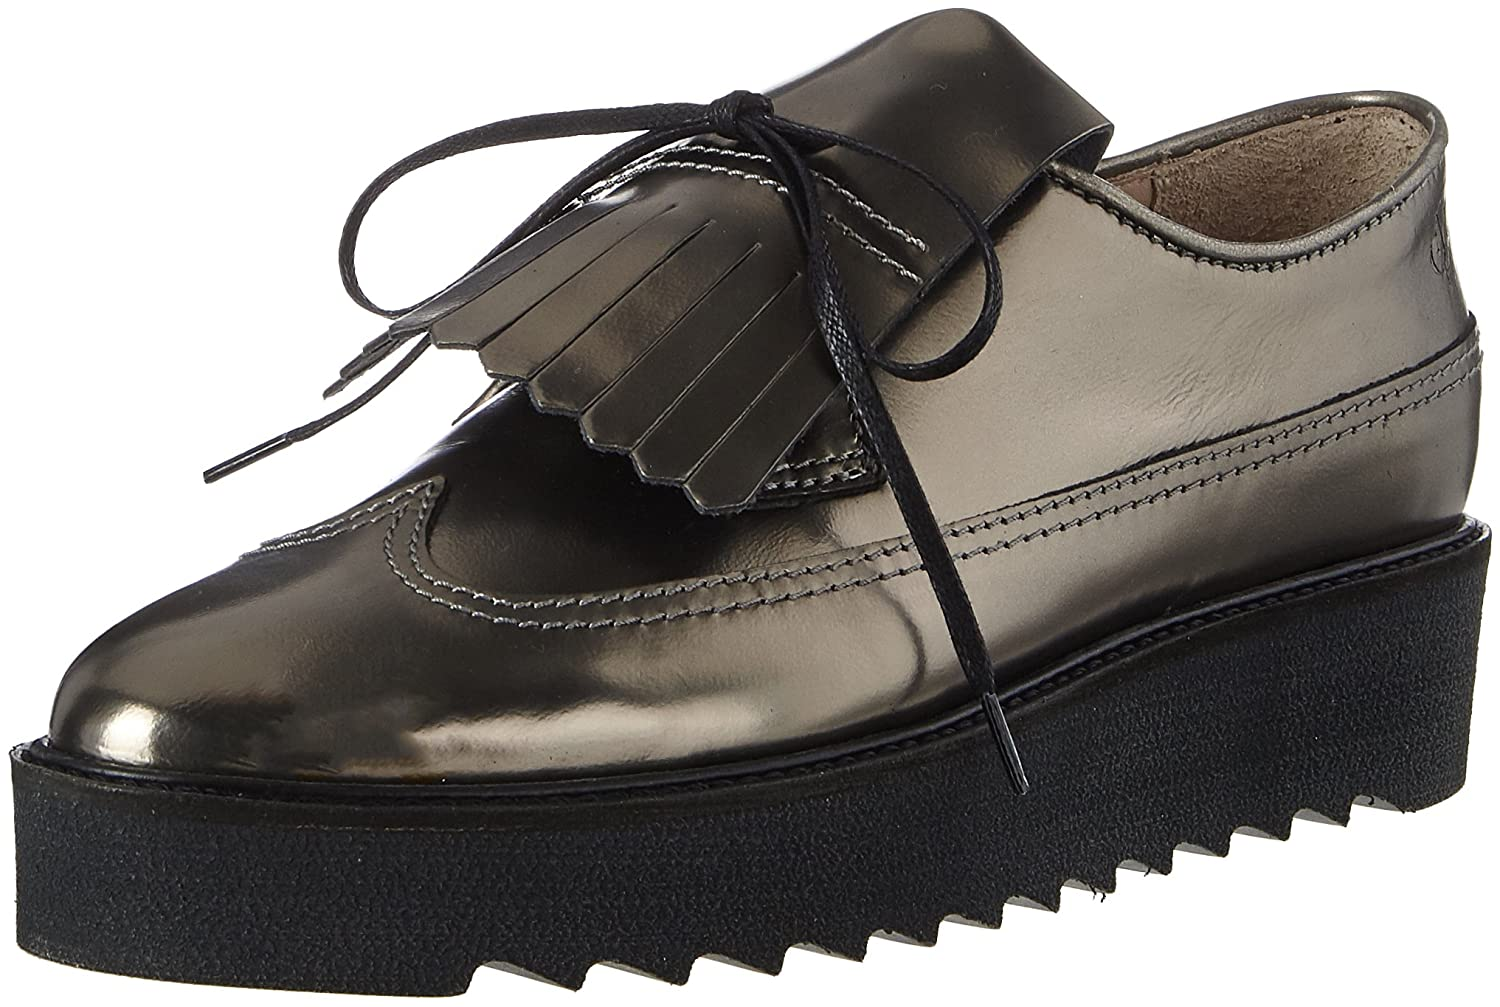 argent (Gunmetal) Marc Marc O'Polo Lace Up chaussures 70814243402102, Mocassins Femme